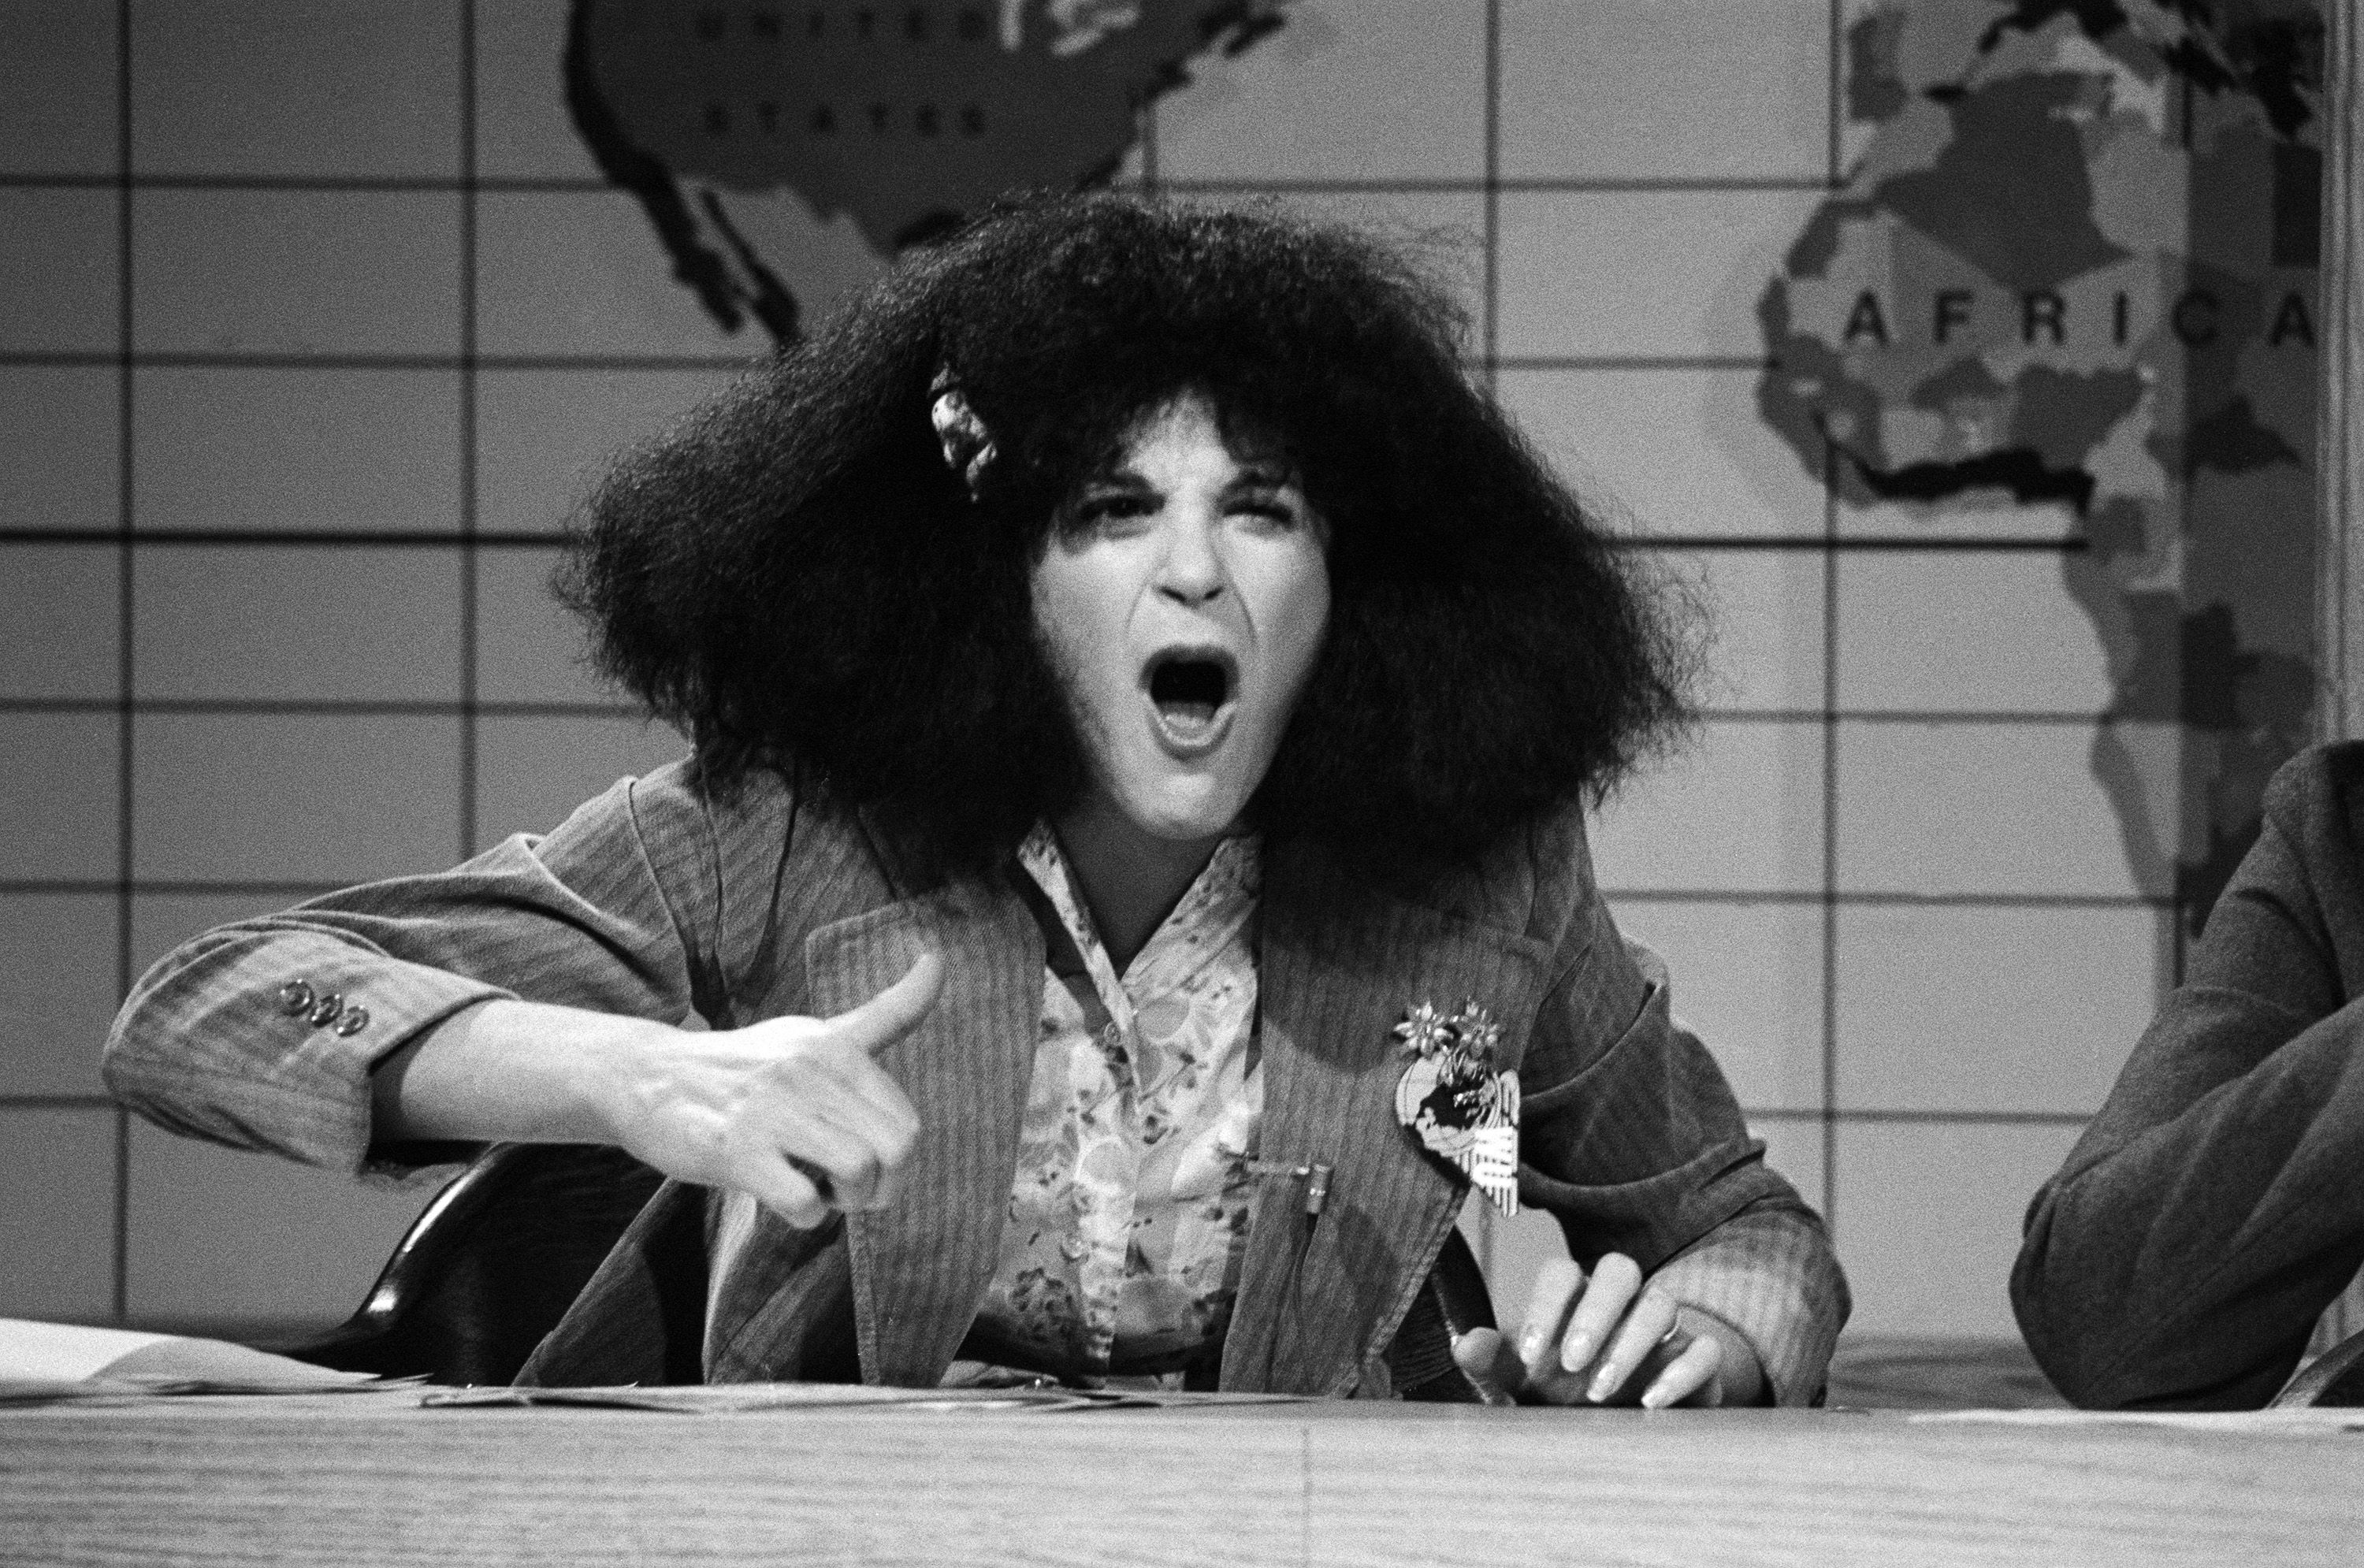 Gilda Radner Was One of <em>SNL</em>'s Best. Now She Gets the Documentary She Deserves.